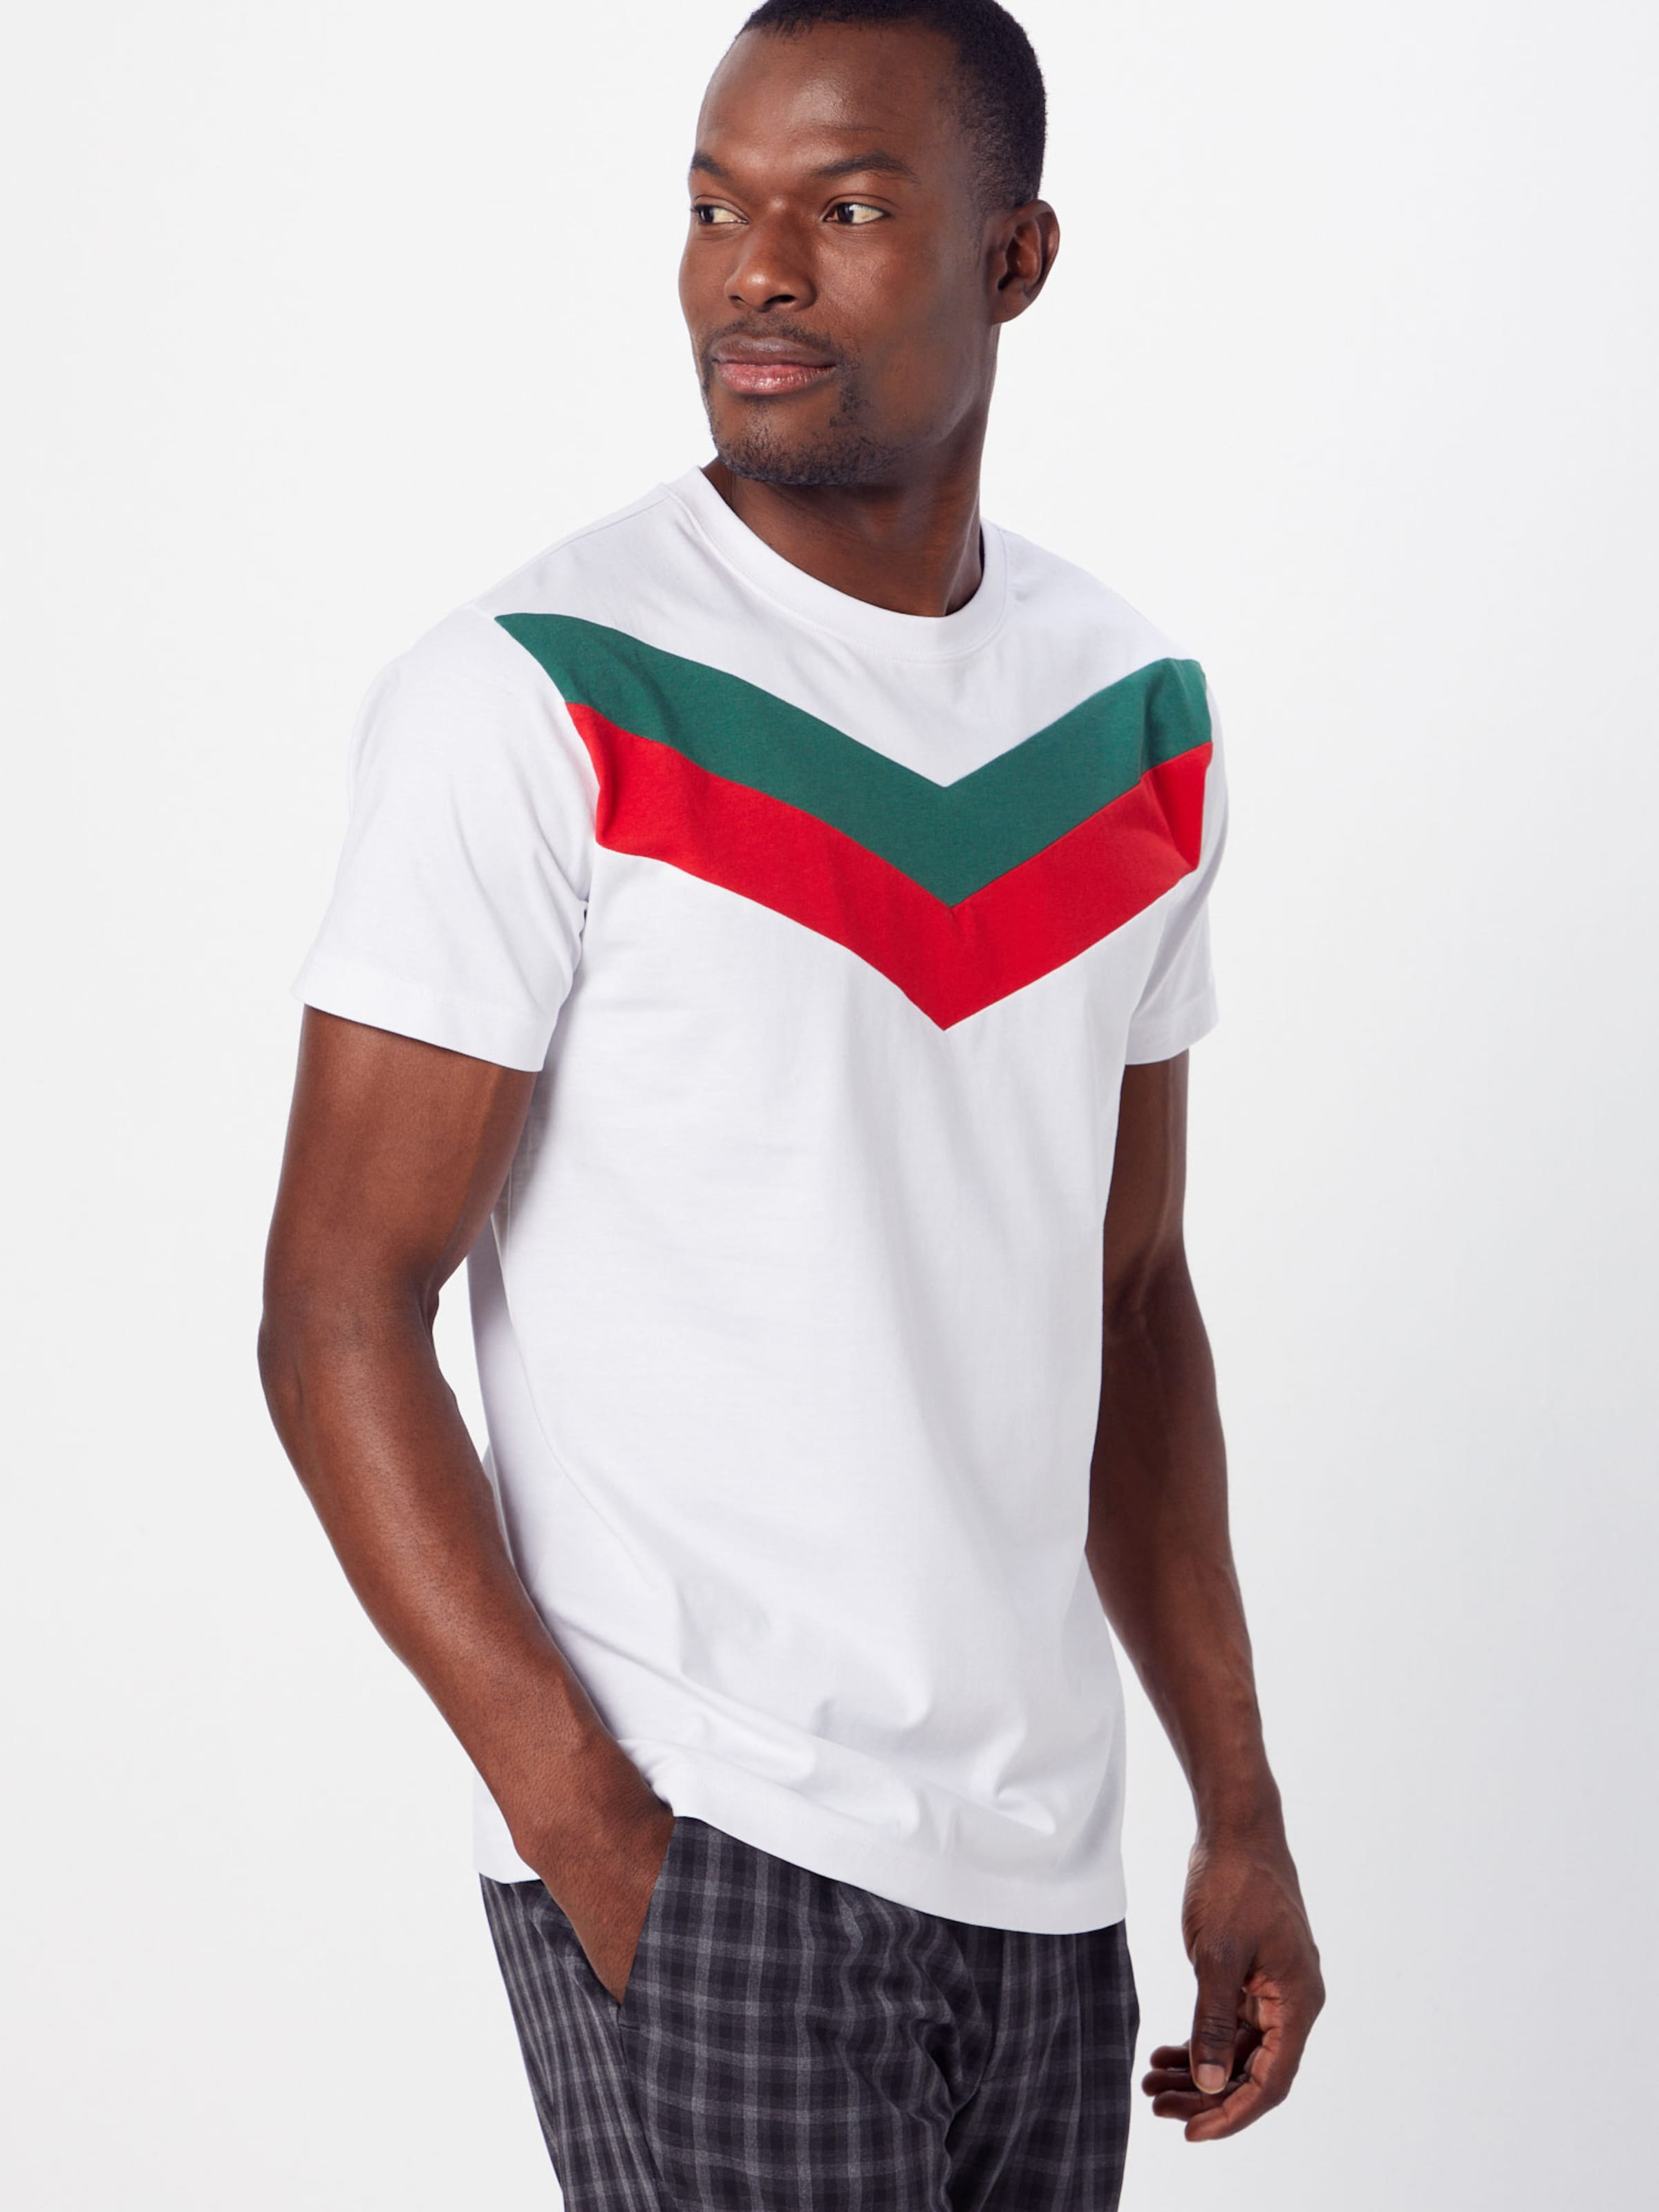 Classics Shirt 'arrow Tee' Weiß Panel Urban GrünRot In kZwOXnN80P